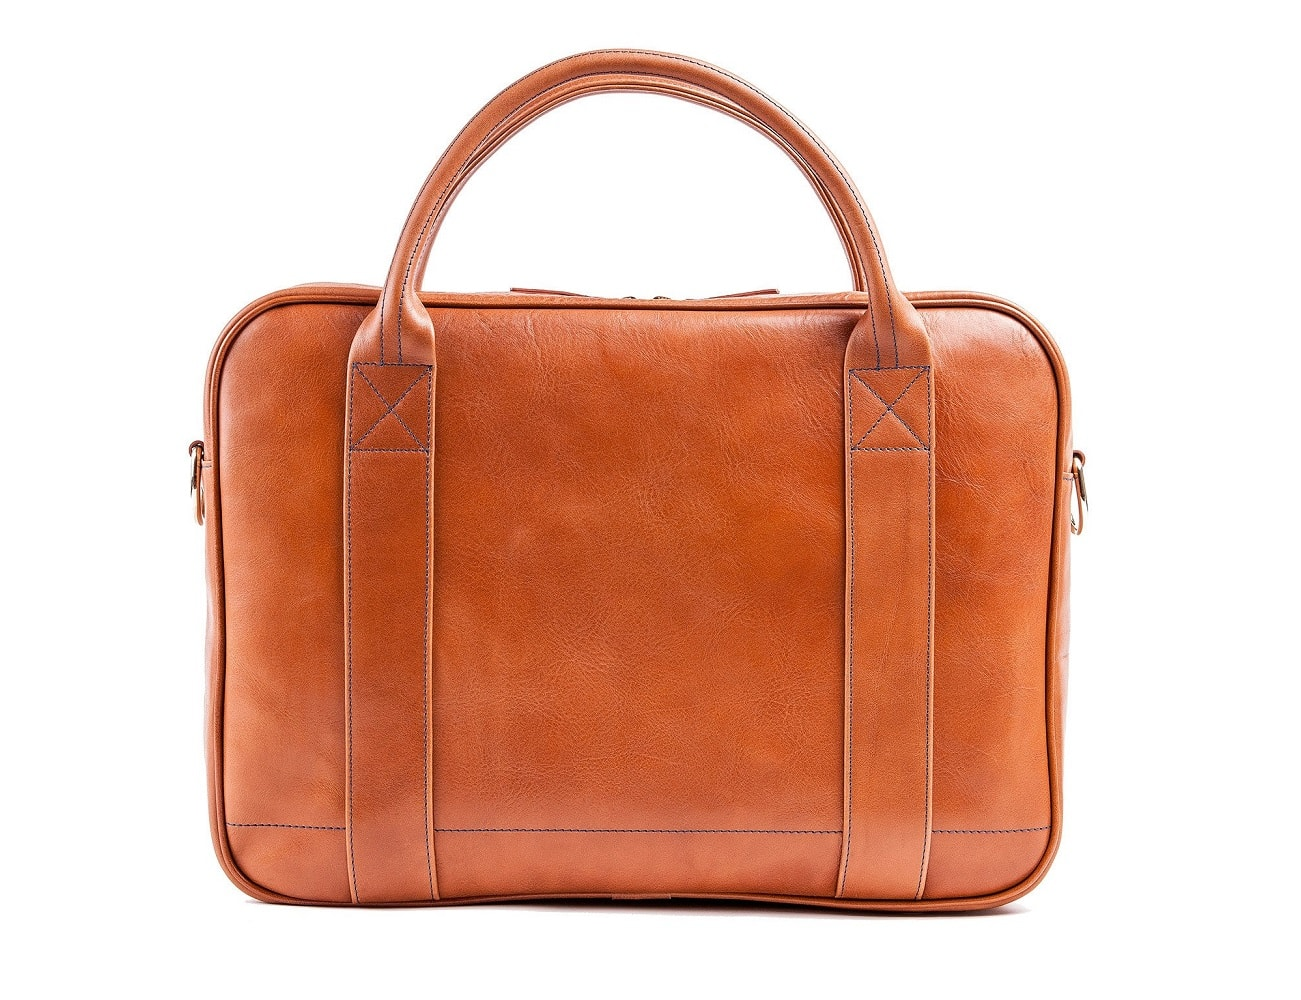 Leather+Messenger+Bag+%26%238211%3B+Holds+Your+MacBook%2C+Umbrella%2C+IPad+And+More